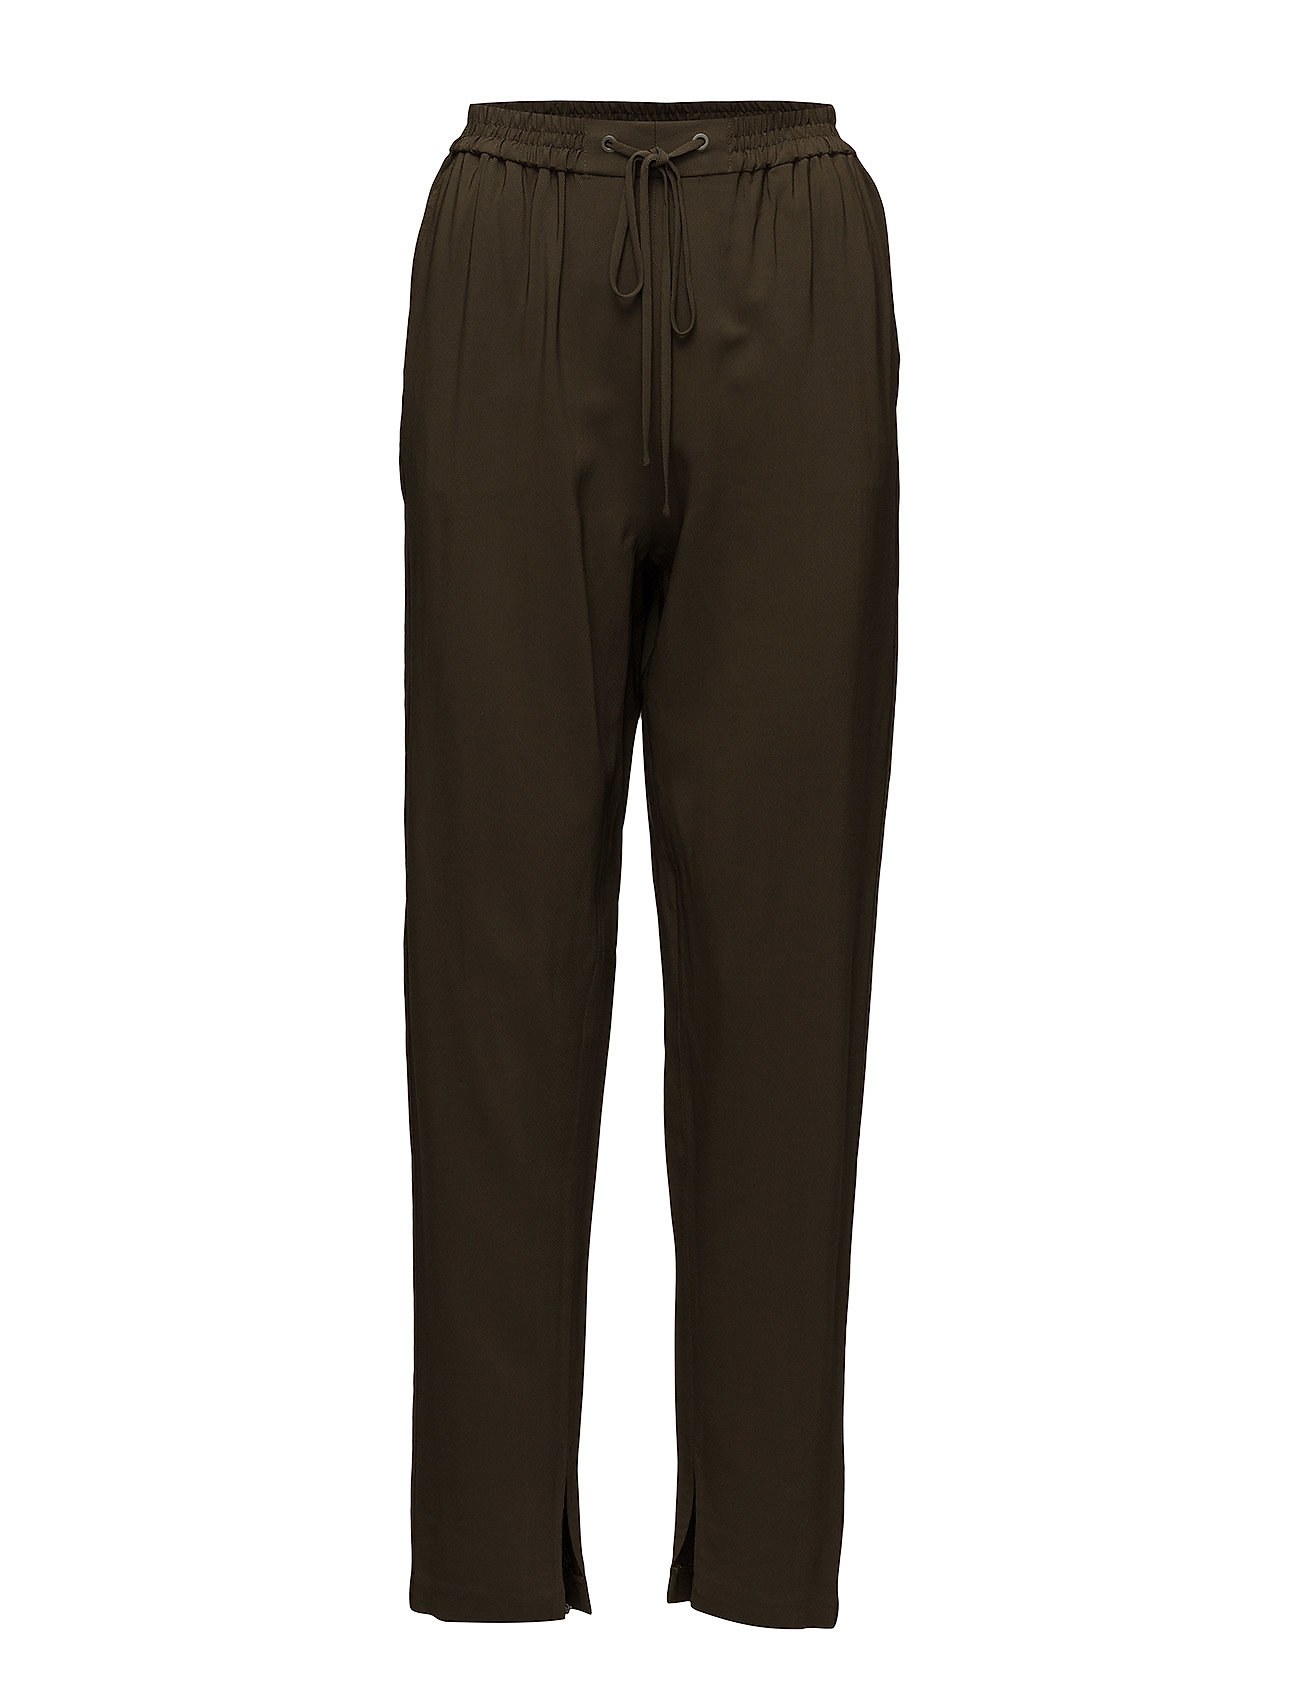 Image of Suiting Track Pant - Rvt Casual Bukser Grøn 3.1 PHILLIP LIM (3042877903)